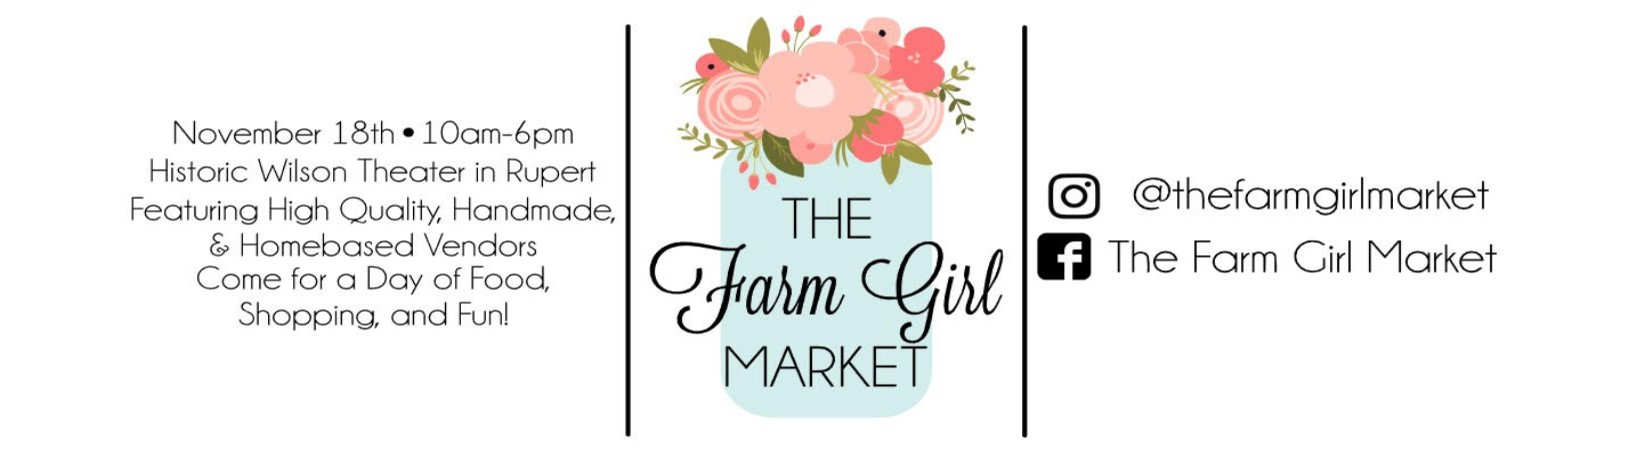 The Farm Girl Market